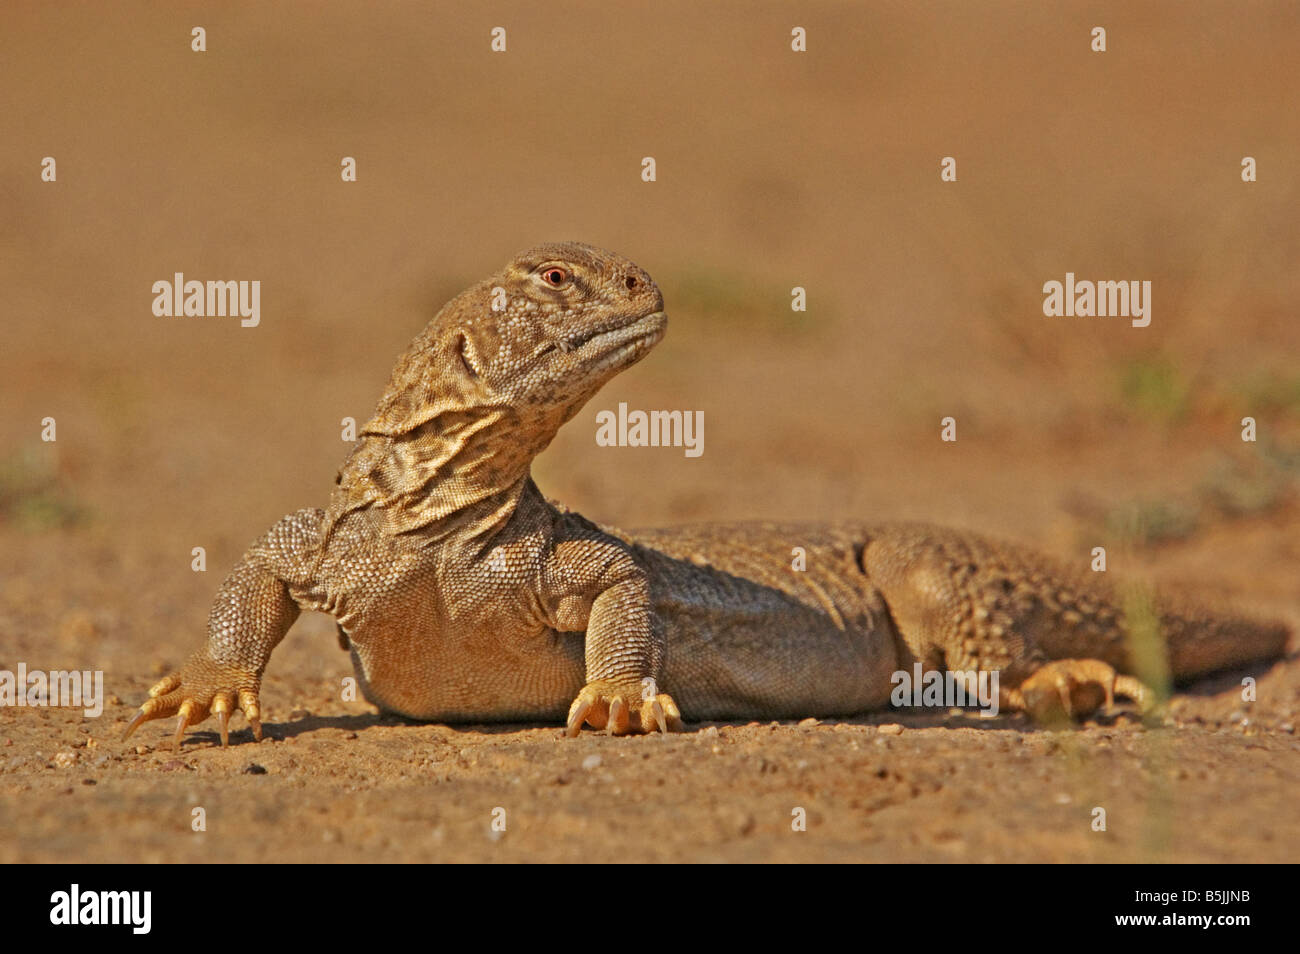 spiny tailed lizard Uromastyx hardwickii on the ground in the desert of kutch, in Gujarat, India - Stock Image